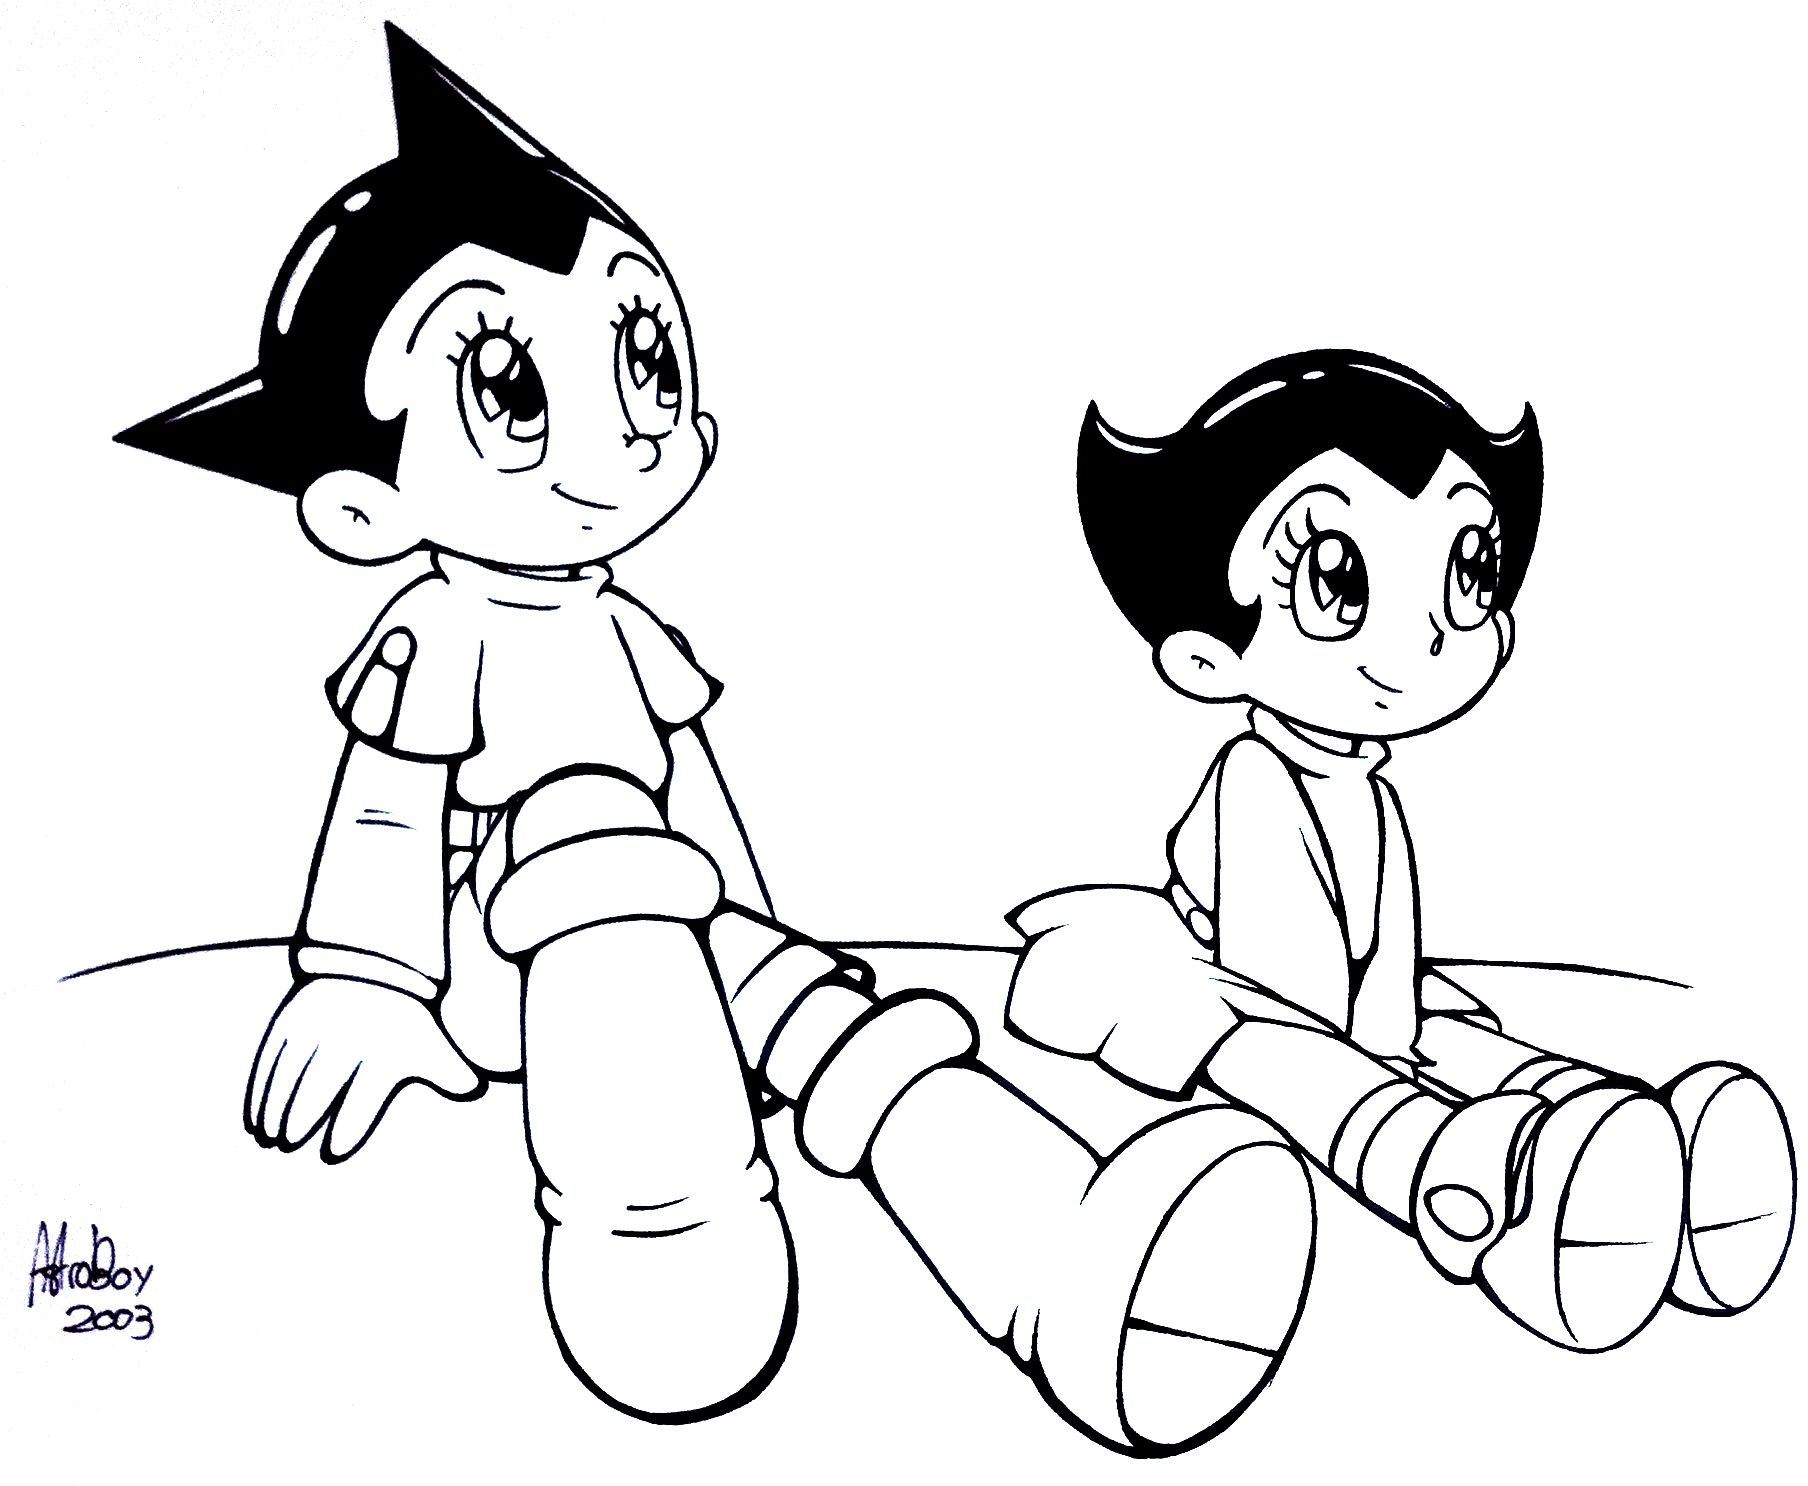 astro and zoran by astro boy astro boy pinterest astro boy